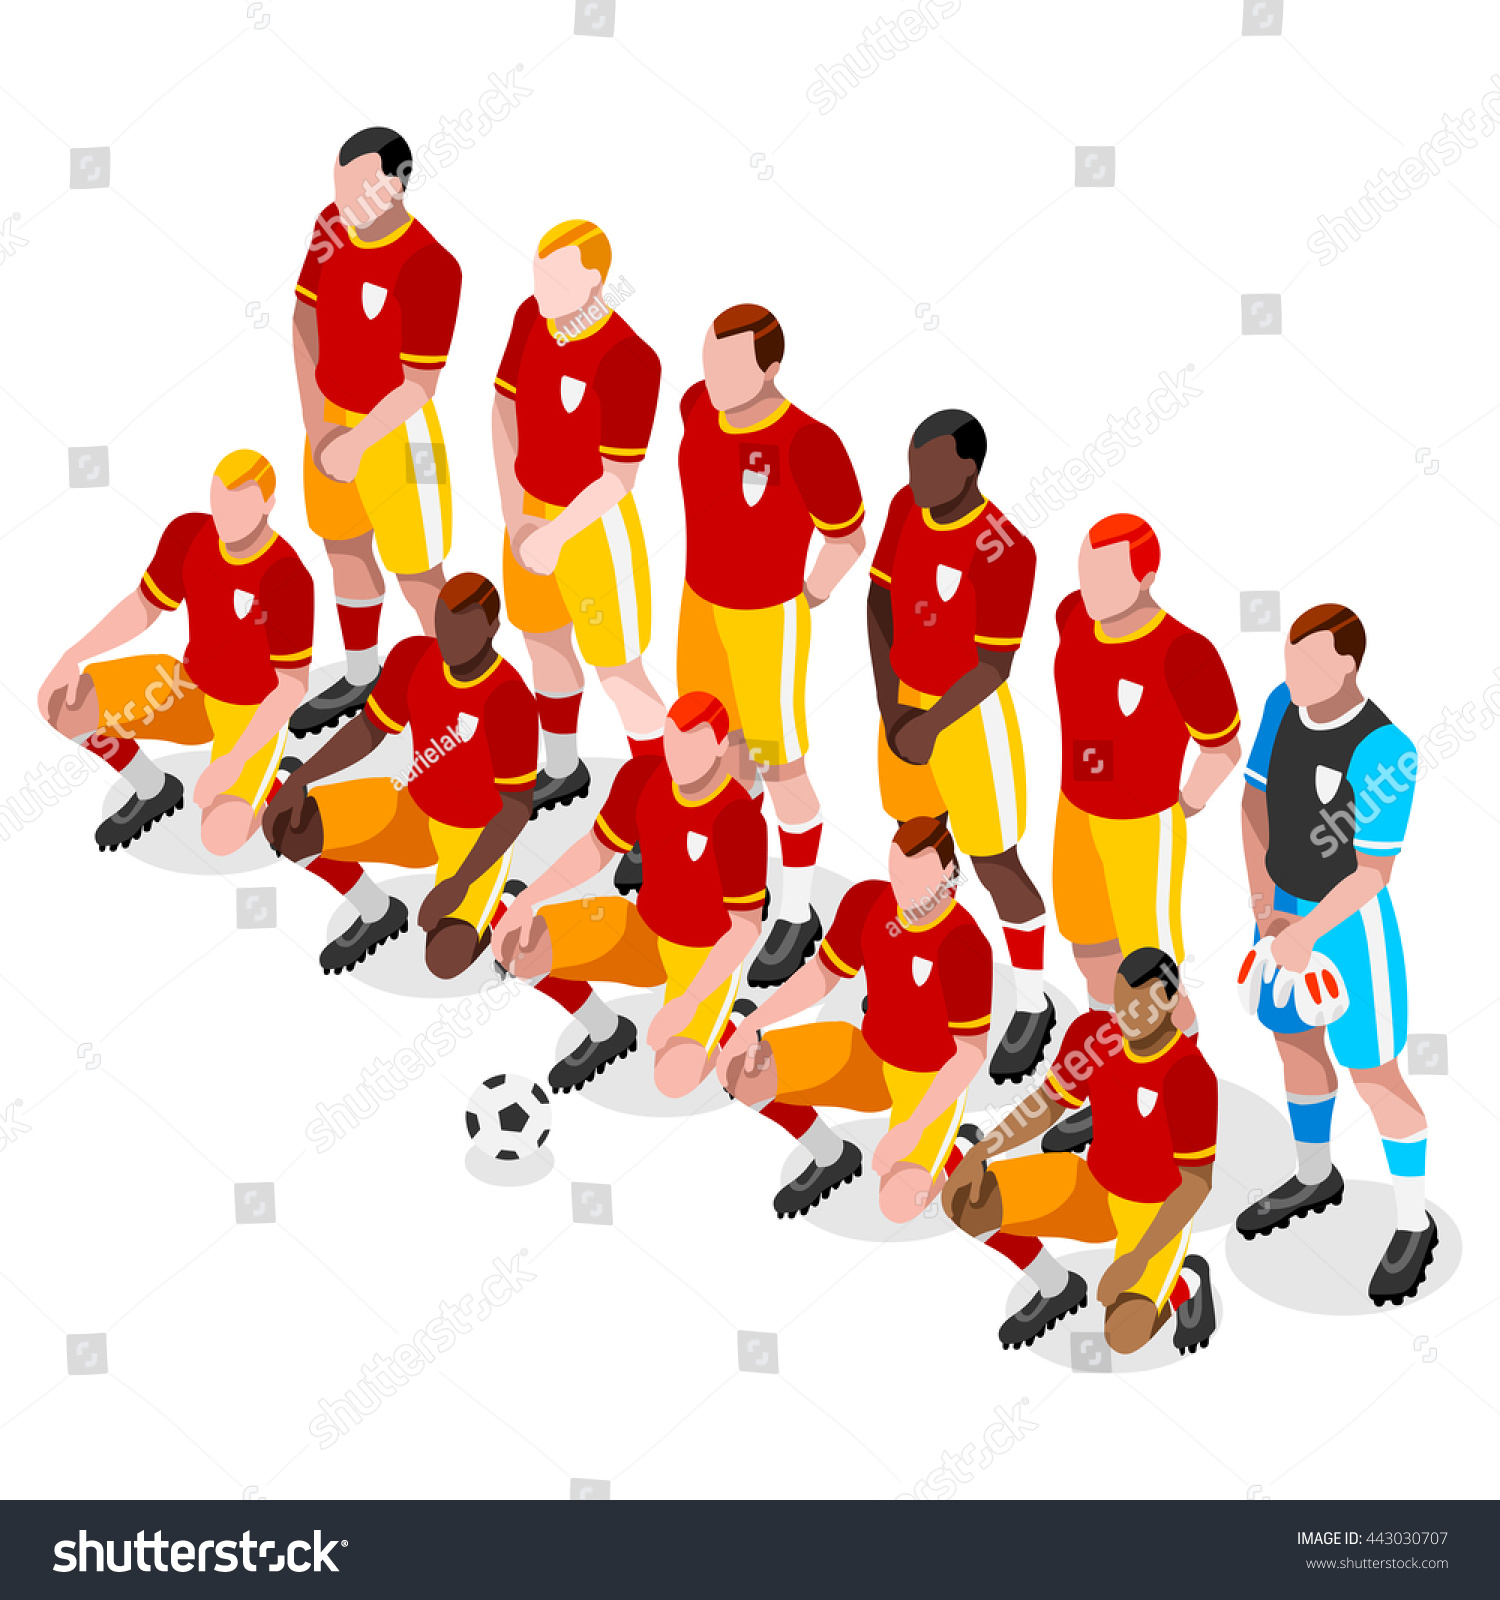 Soccer Player Athlete Football Team Player Stock Vector 443030707 ...